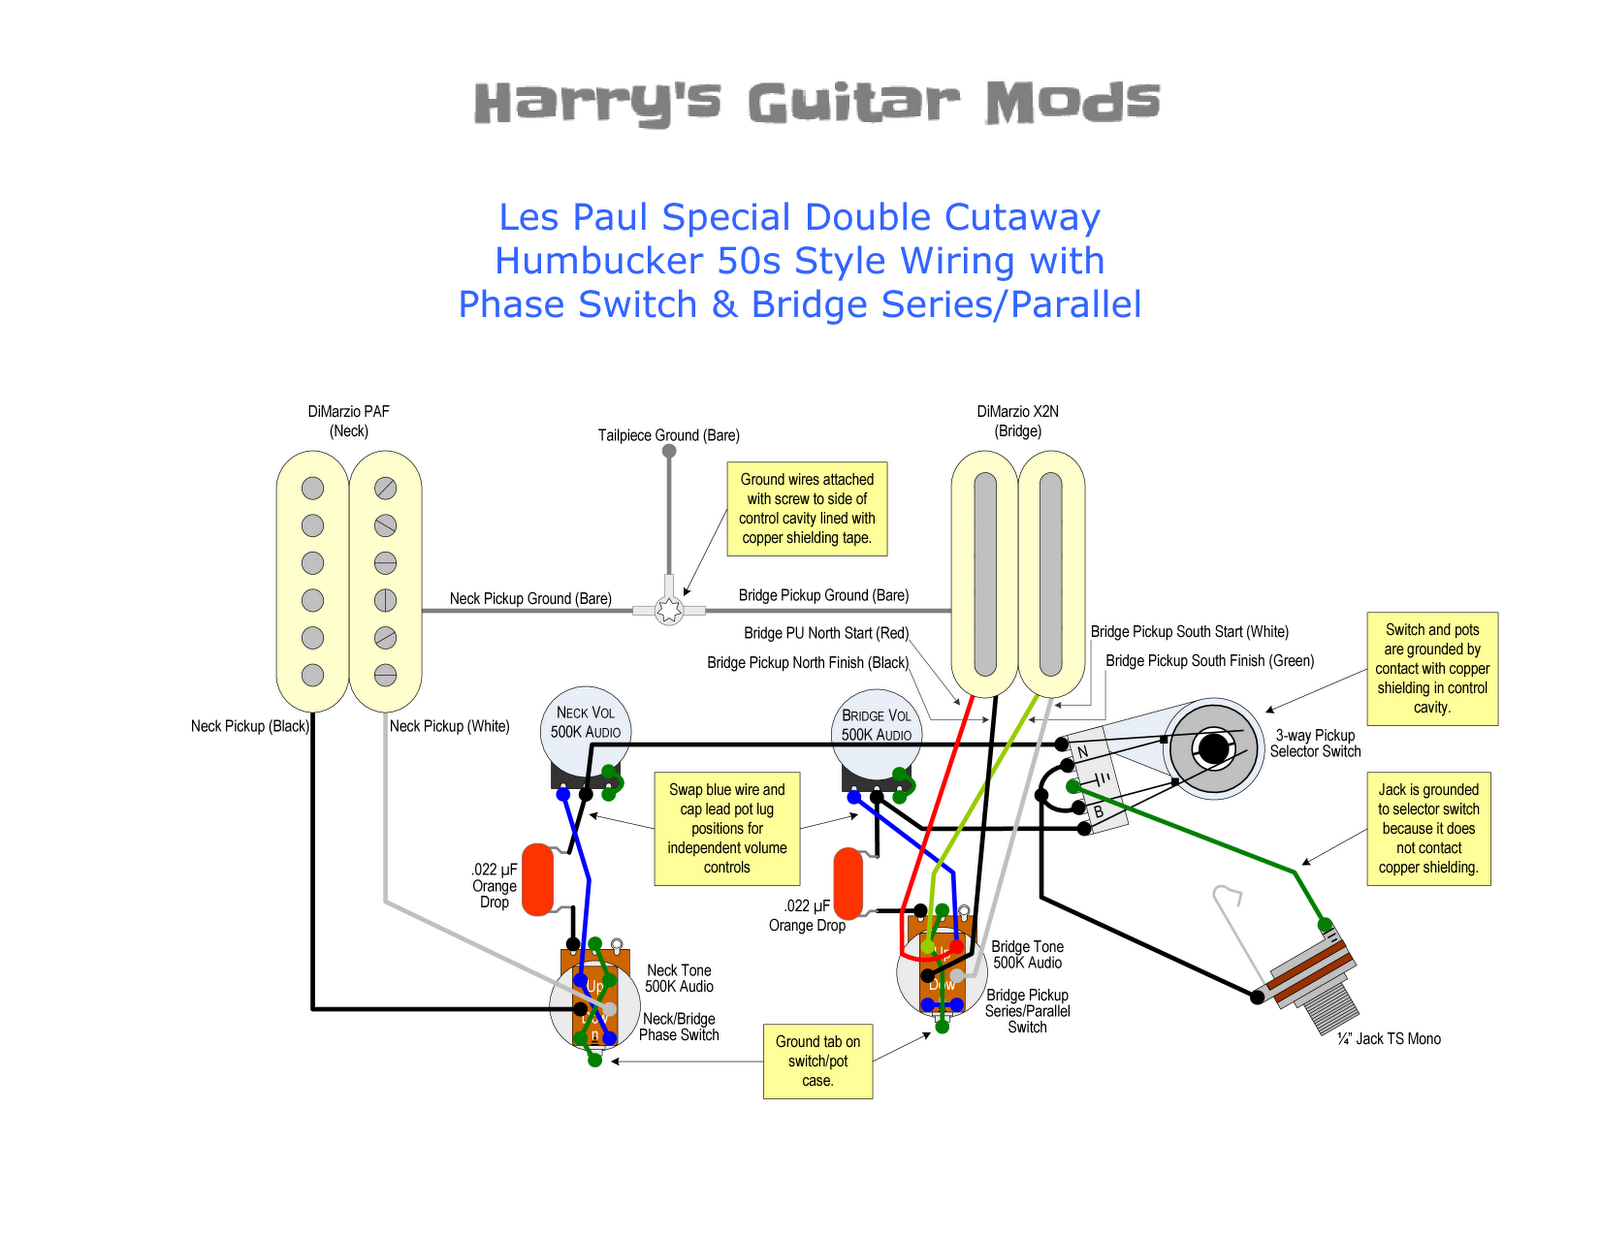 LPS+Wiring+Diagram harry's guitar mods controls wiring upgrade